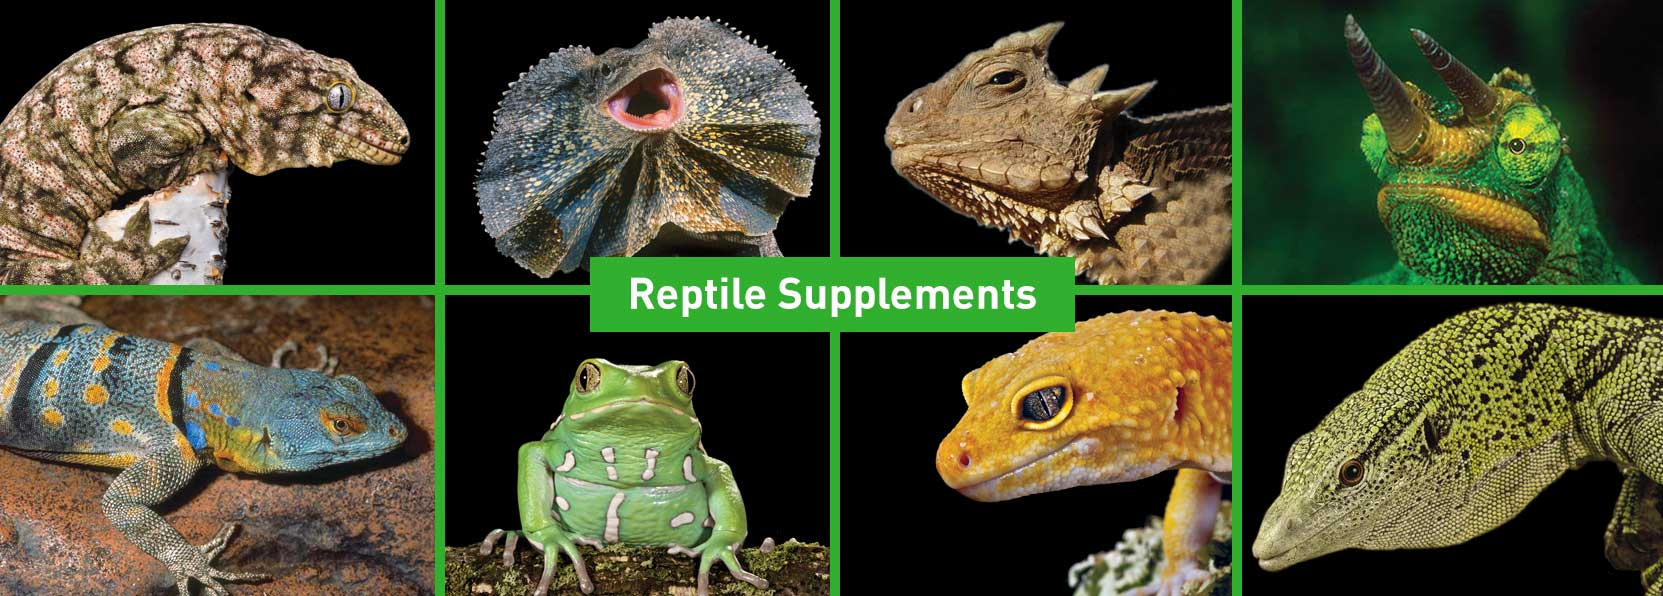 Reptile-Supplements-Products-banner